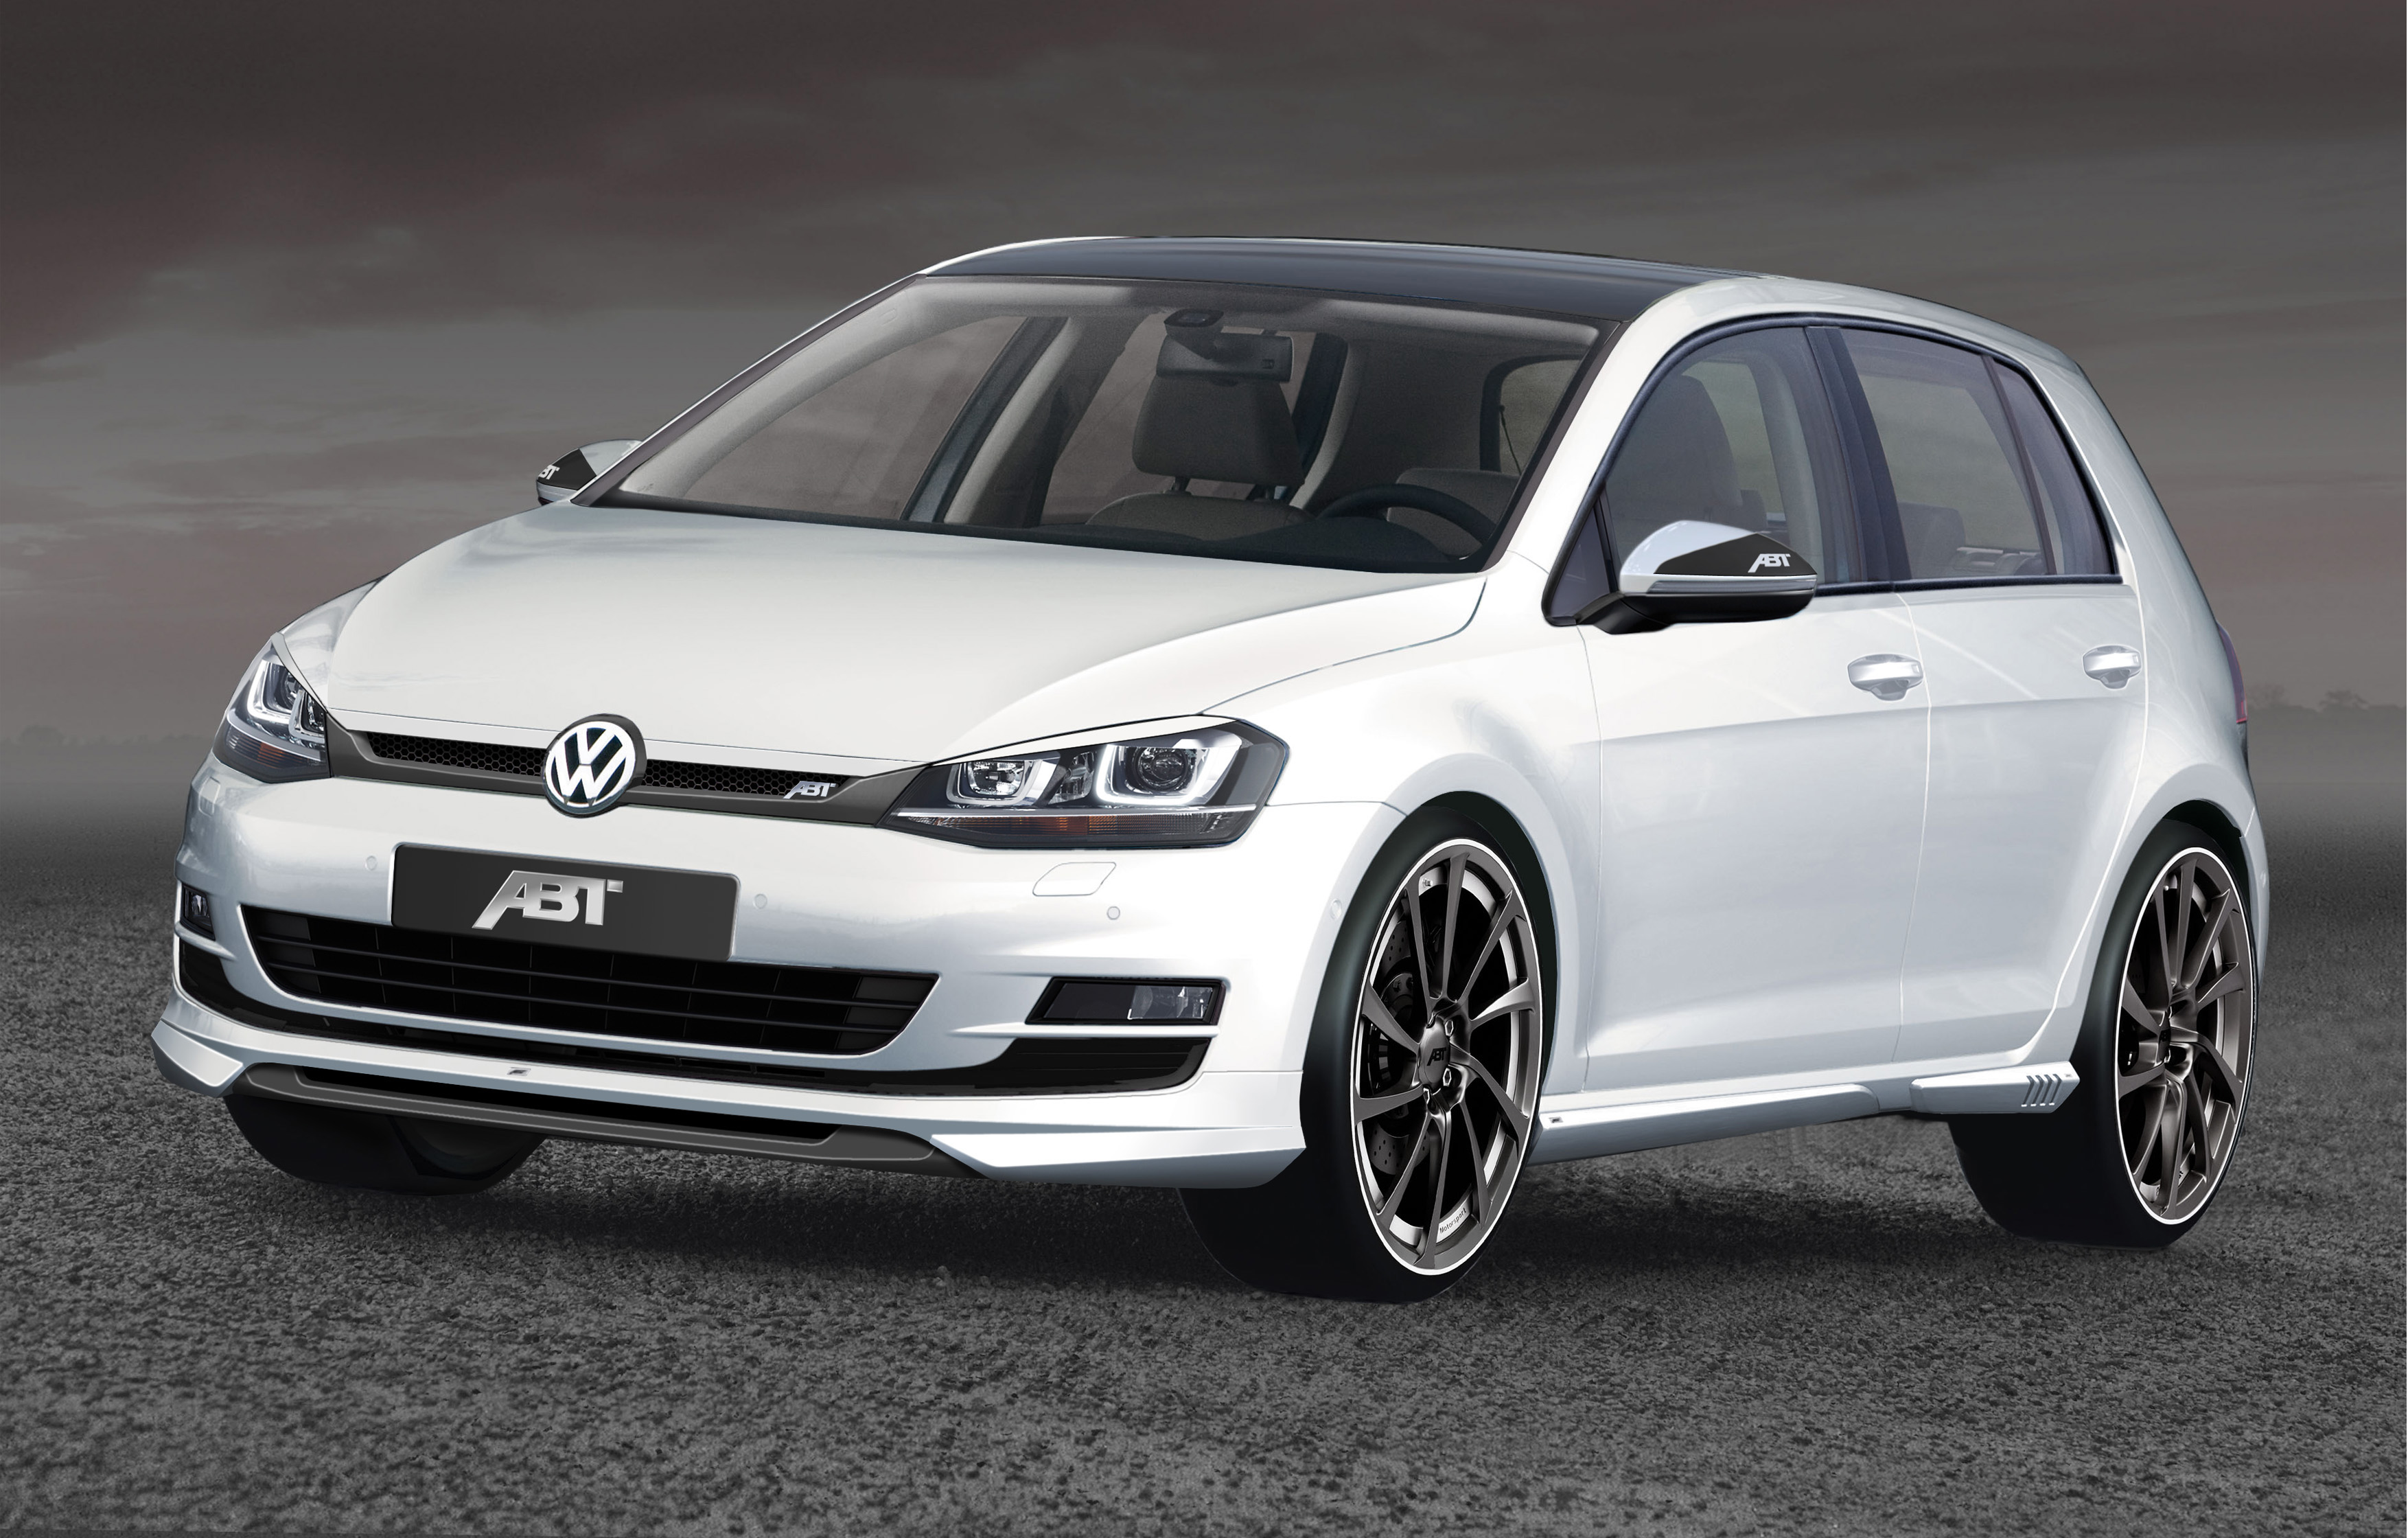 ABT GolfVII Front 960x480